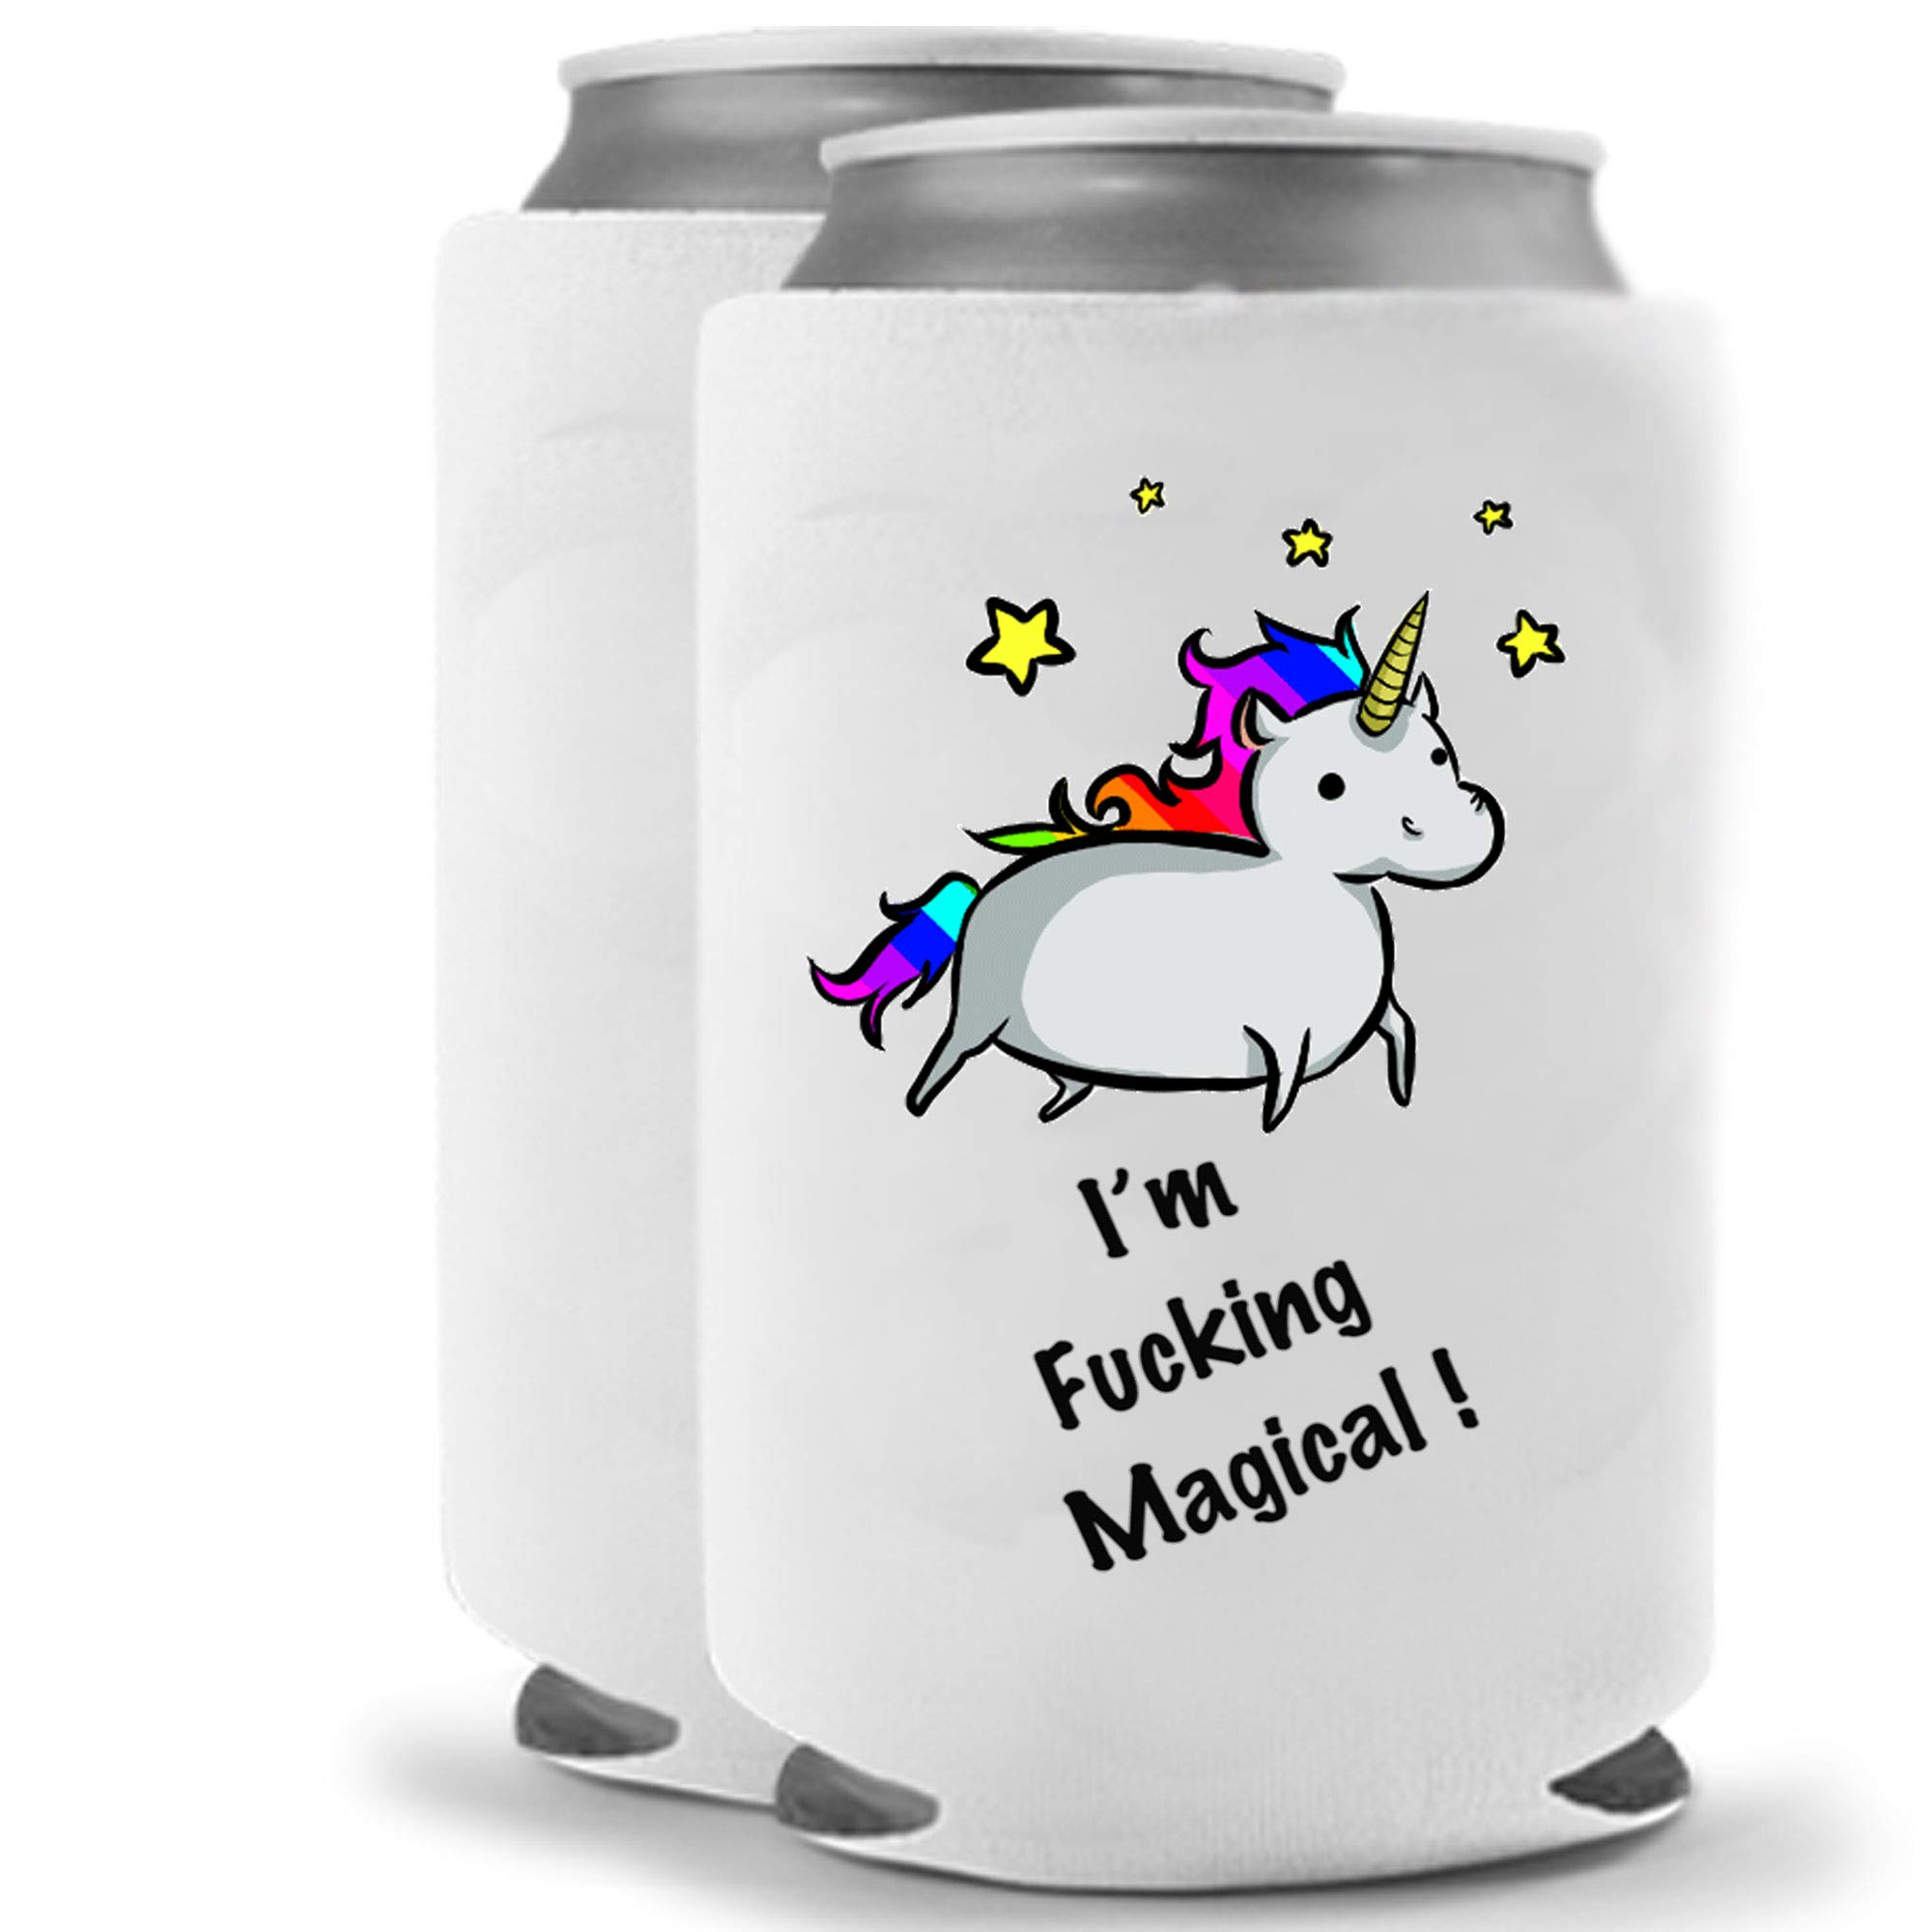 Unicorn - I am Fucking Magical   Funny Novelty Can Cooler Coolie Huggie - Set of two (2)   Beer Beverage Holder - Beer Gifts Home - Quality Neoprene No Fade Can Cooler